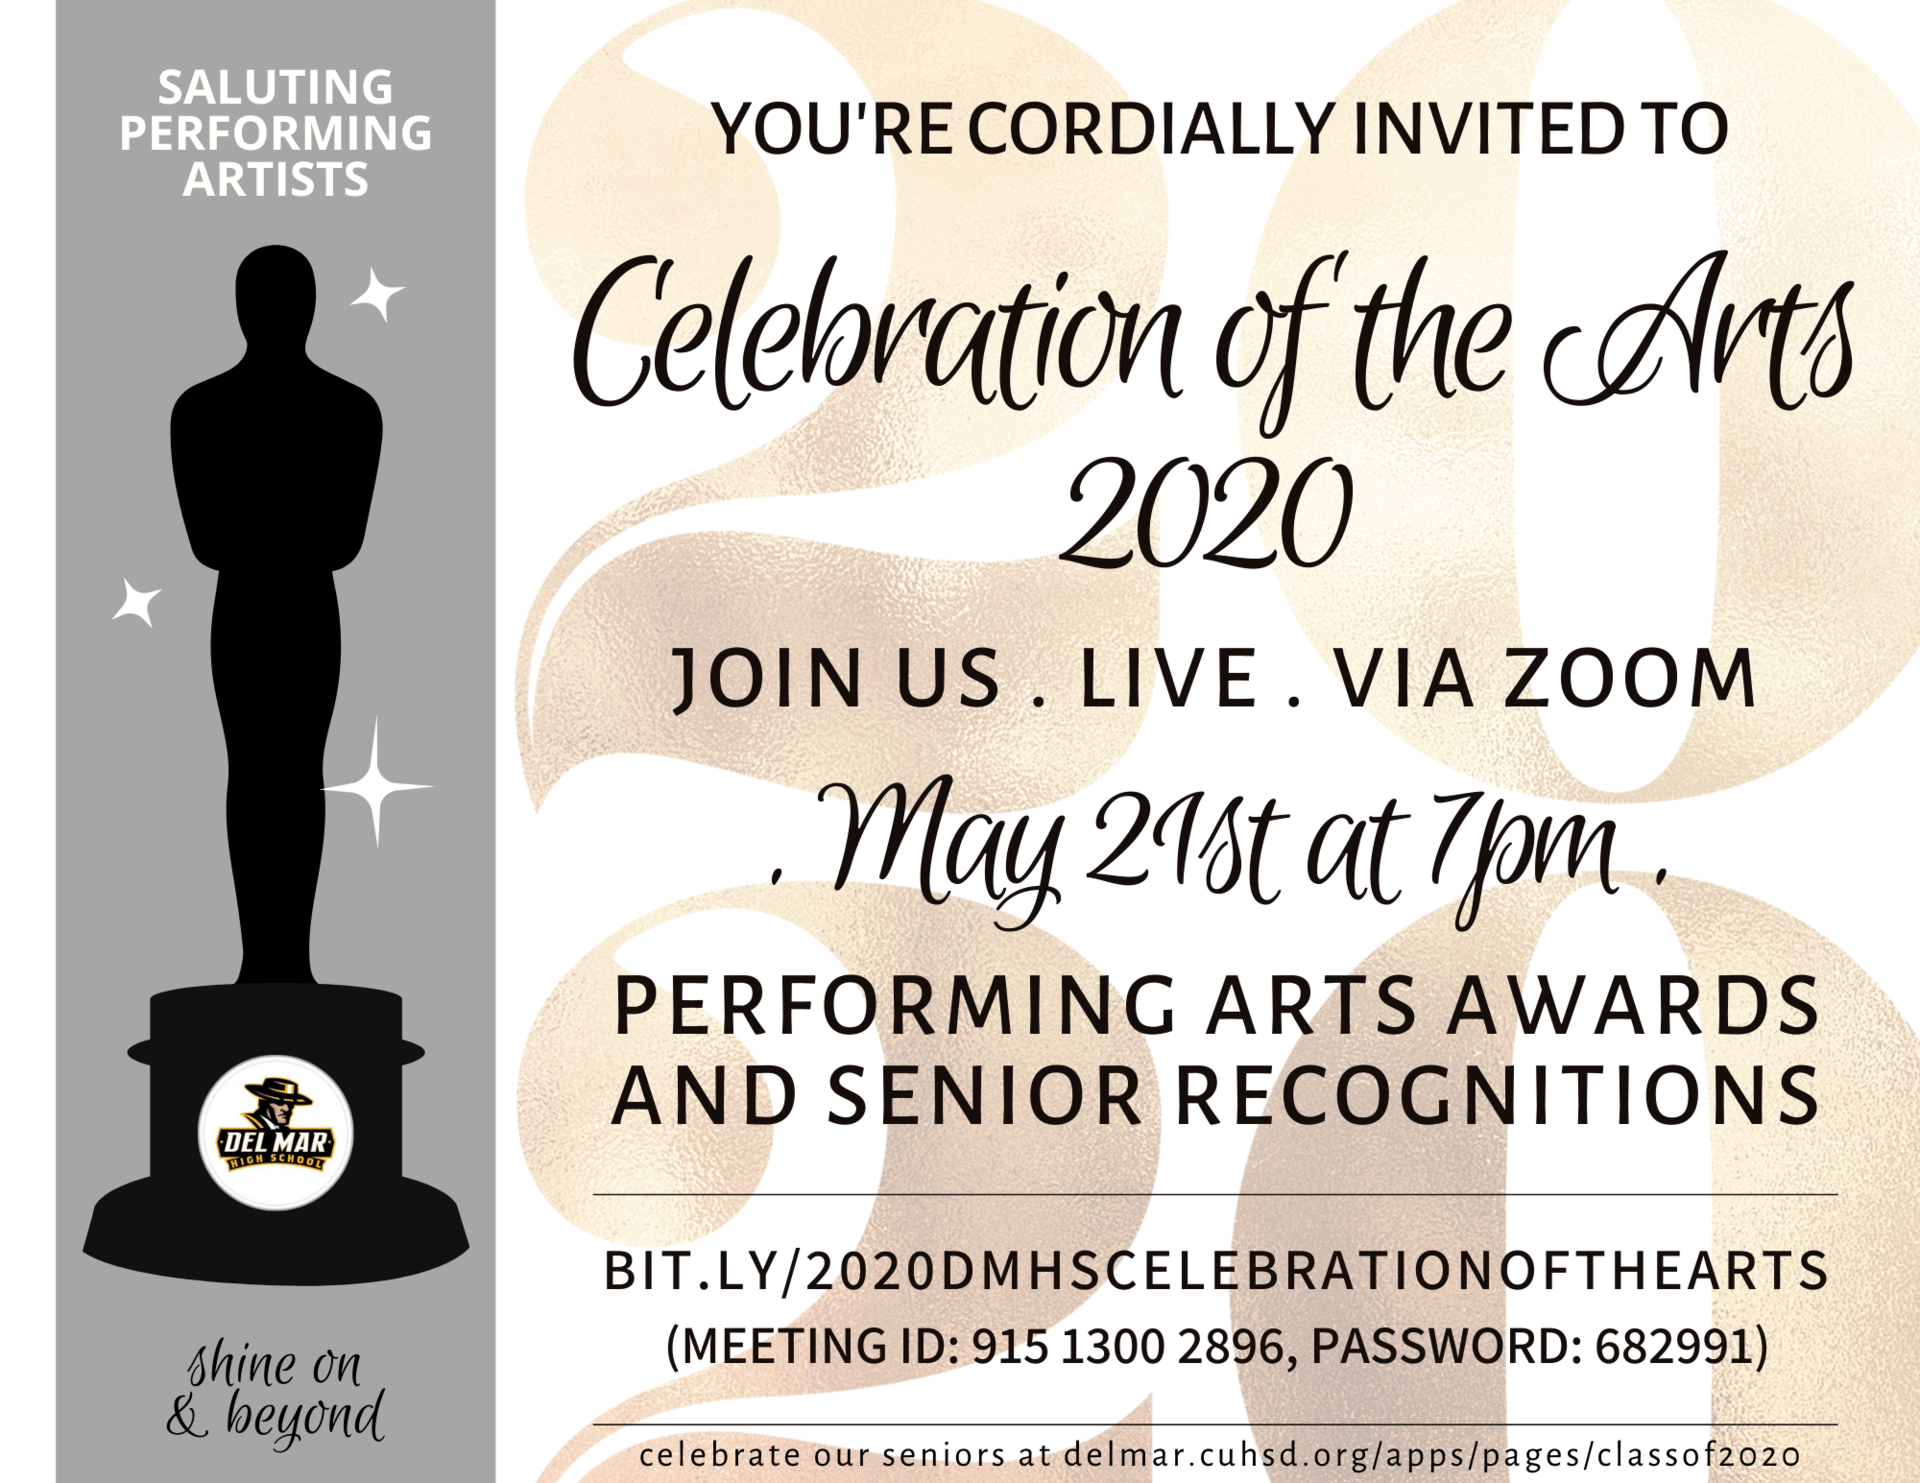 image of celebration of the arts invitation